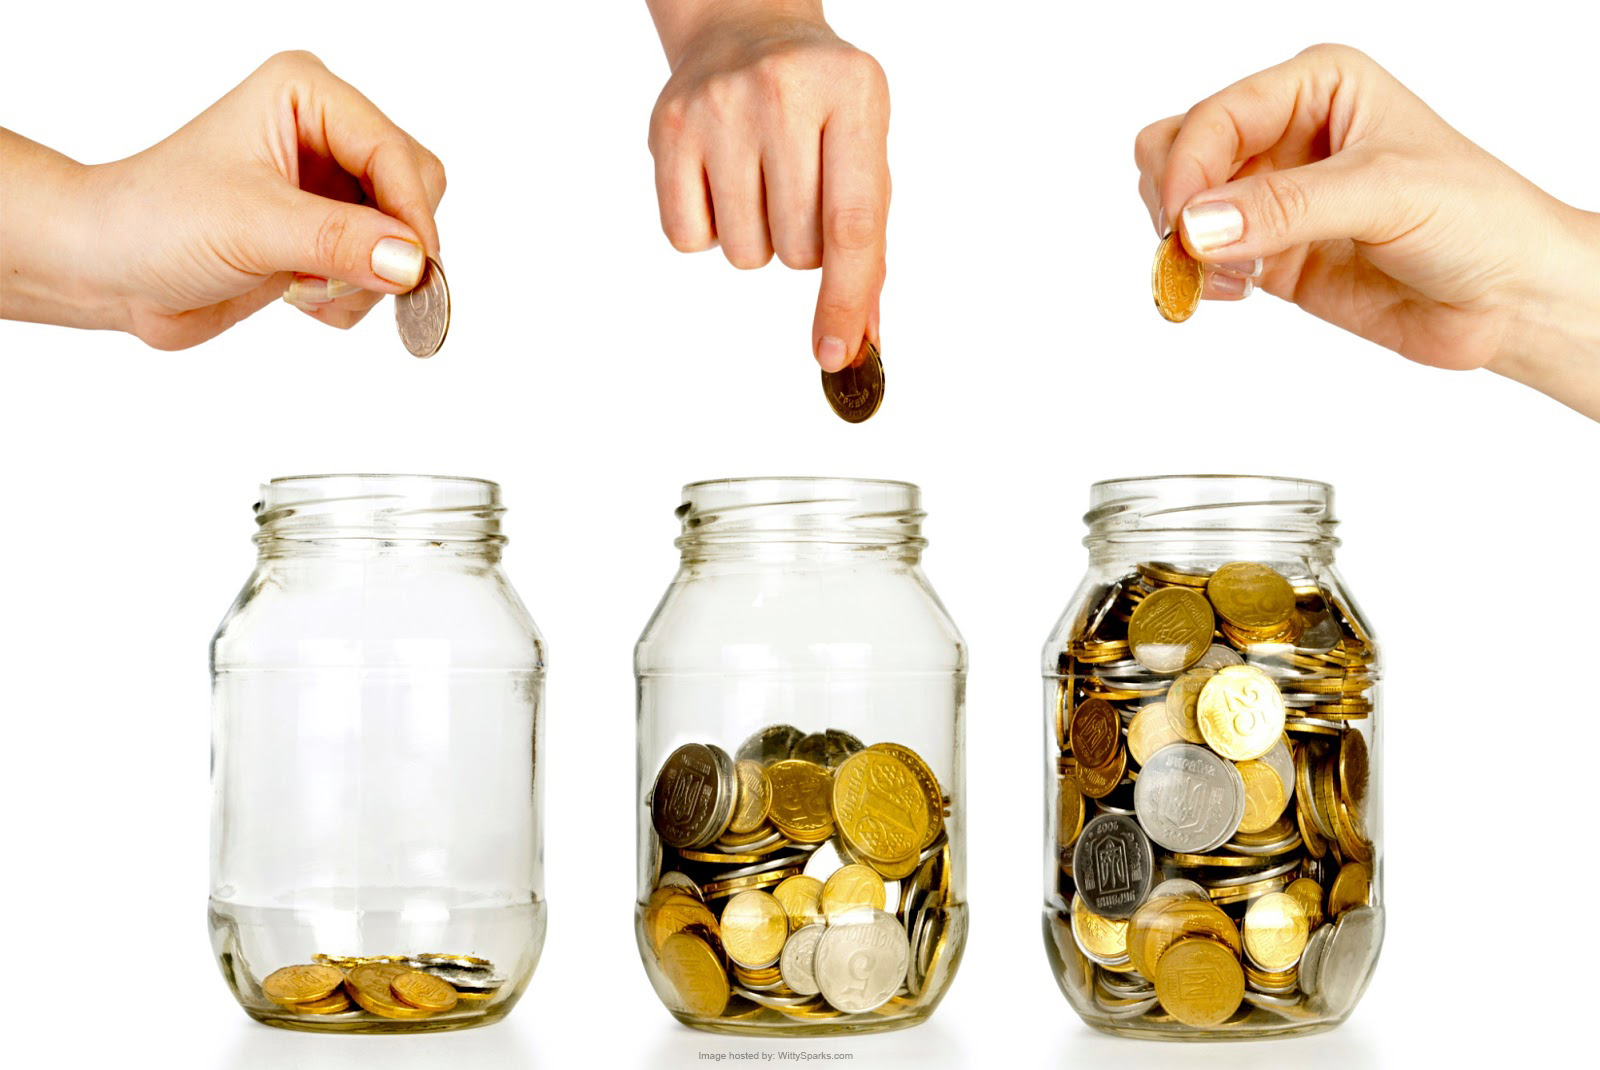 How To Stay Committed To Your Savings Plan